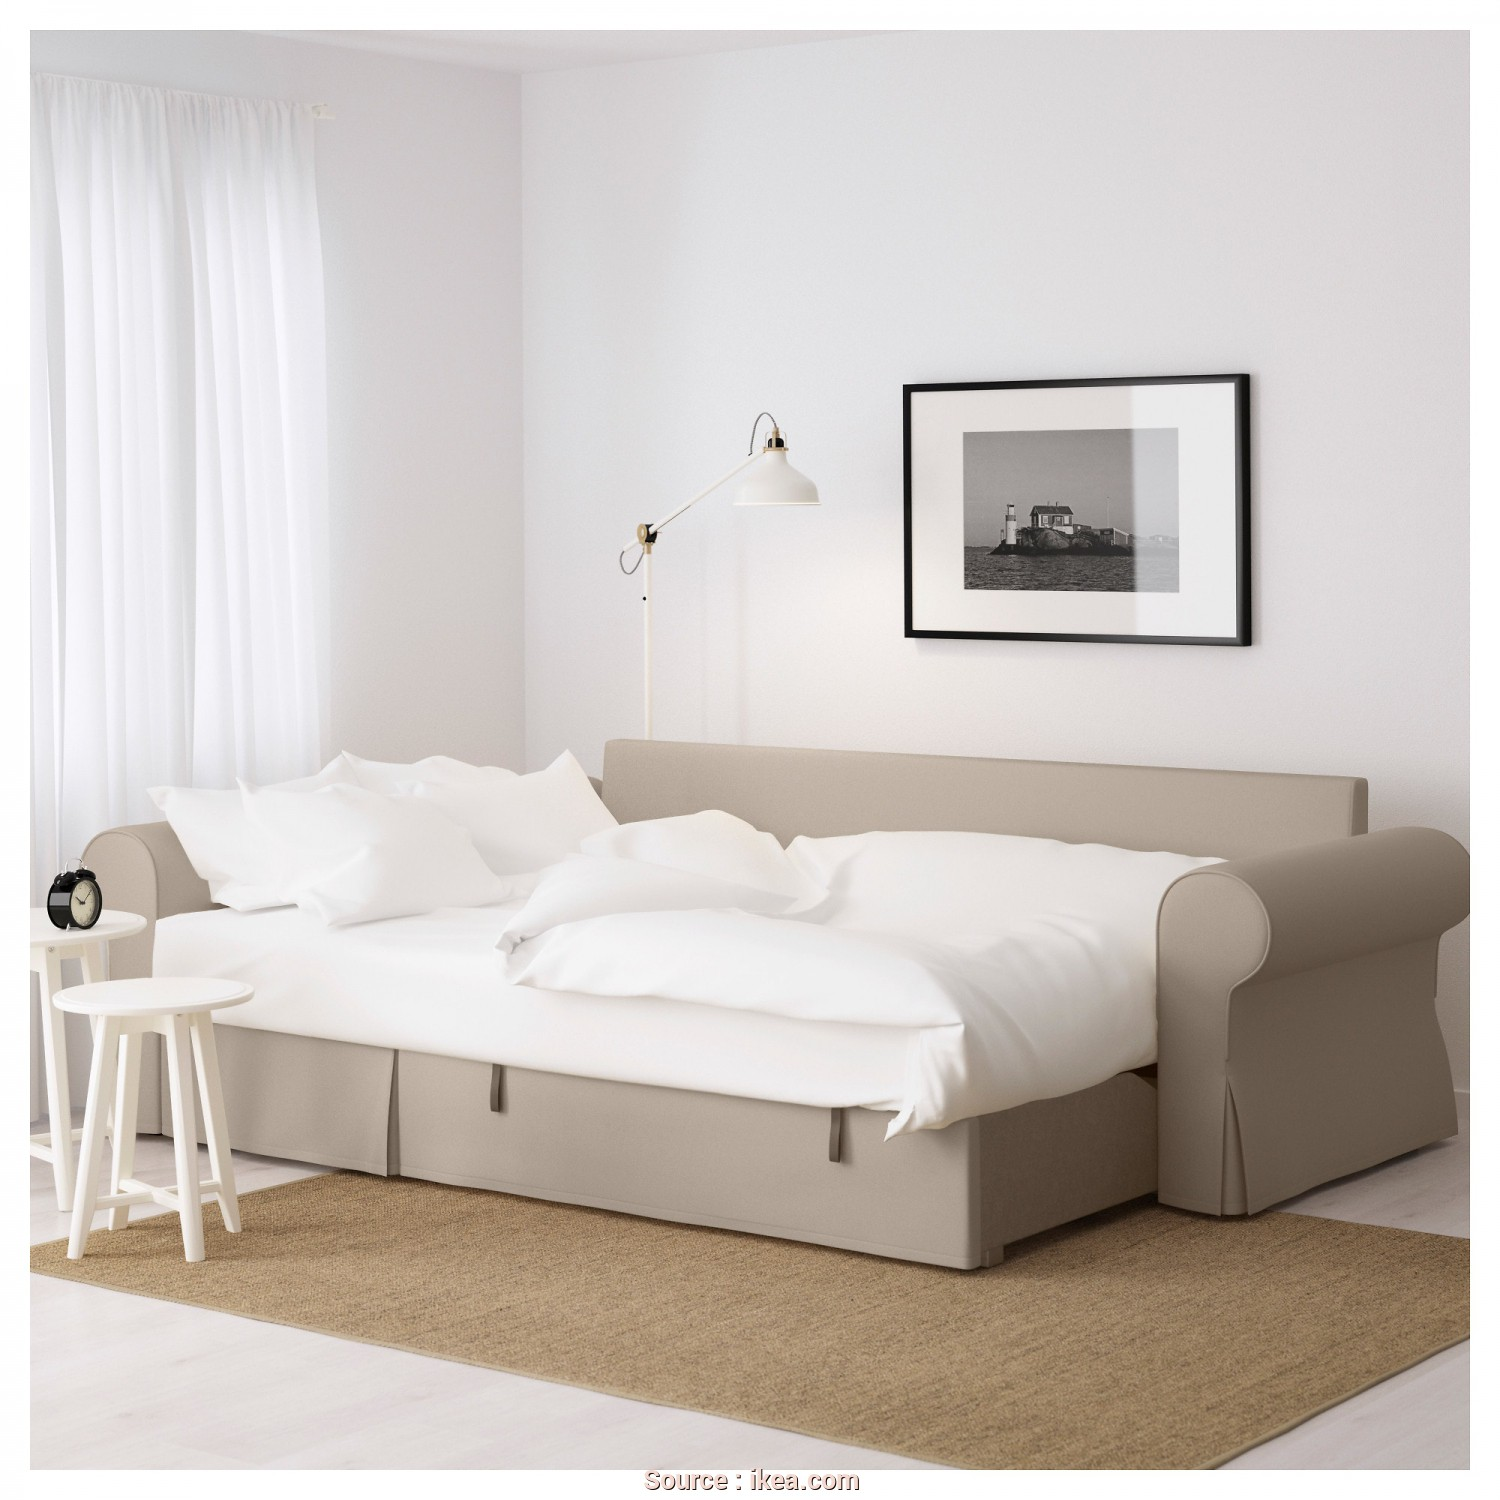 Ikea Backabro Sofa Review, Bello IKEA BACKABRO Sofa, With Chaise Longue Readily Converts Into A Bed